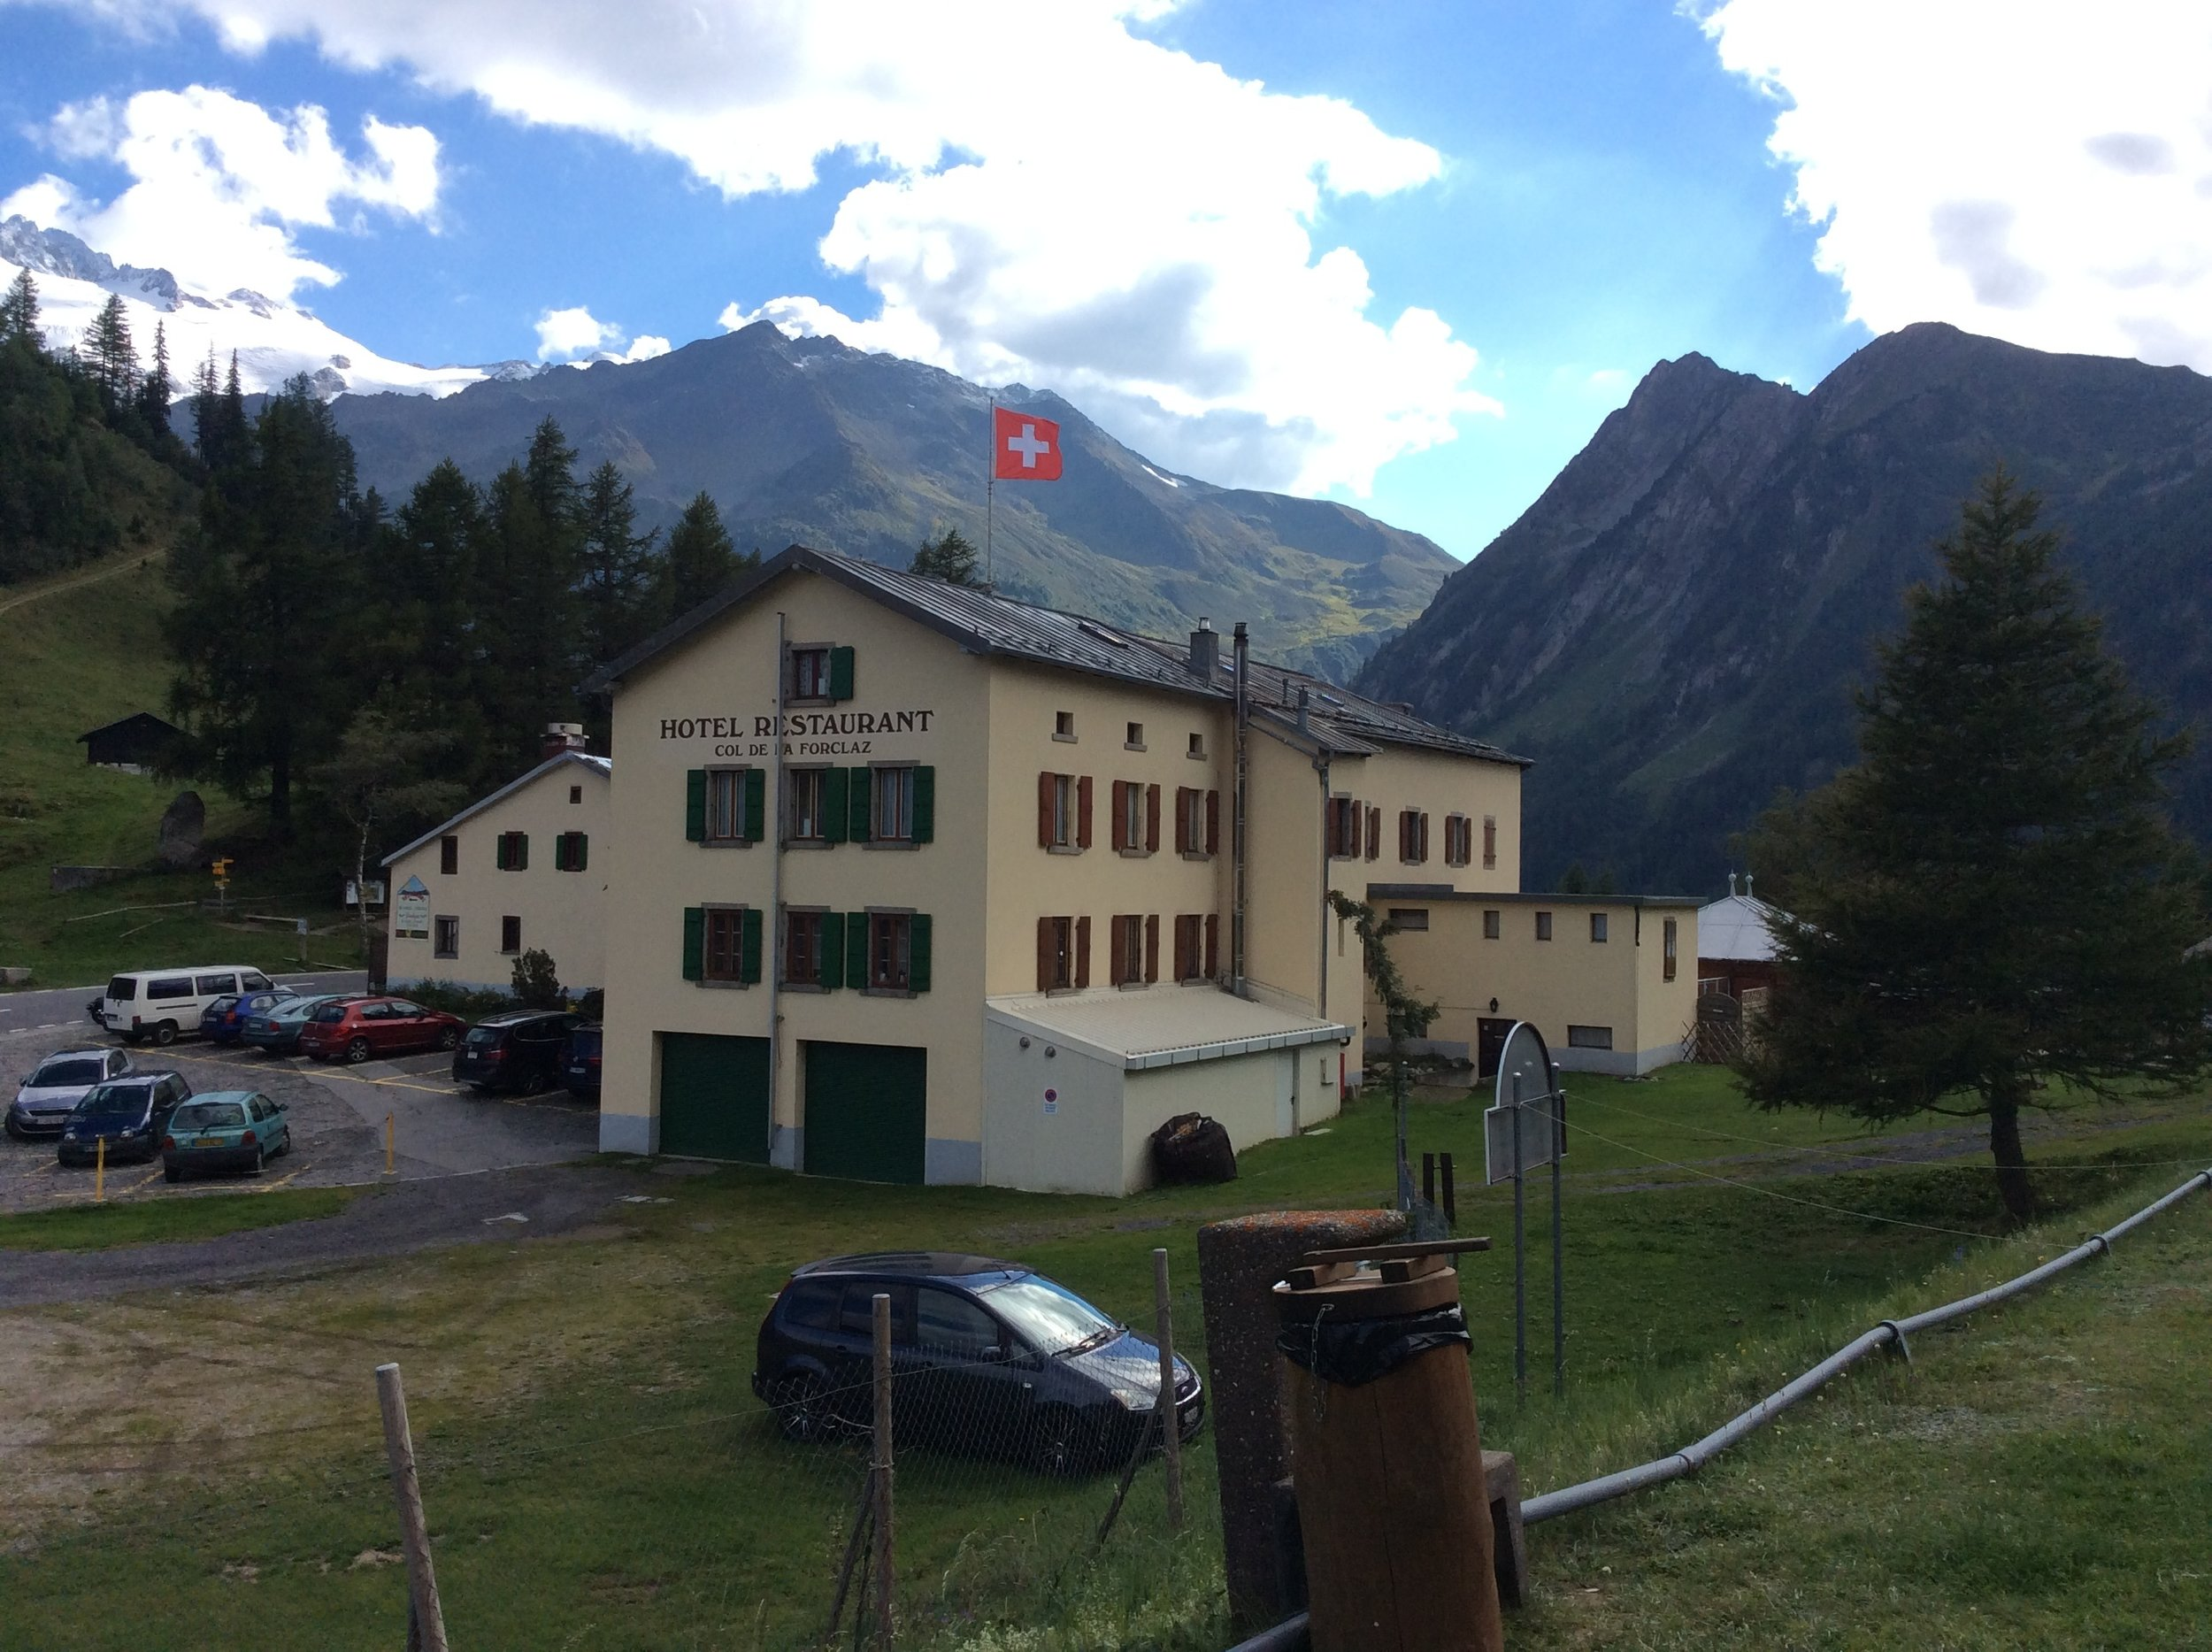 Hotel de la Forclaz from the campsite